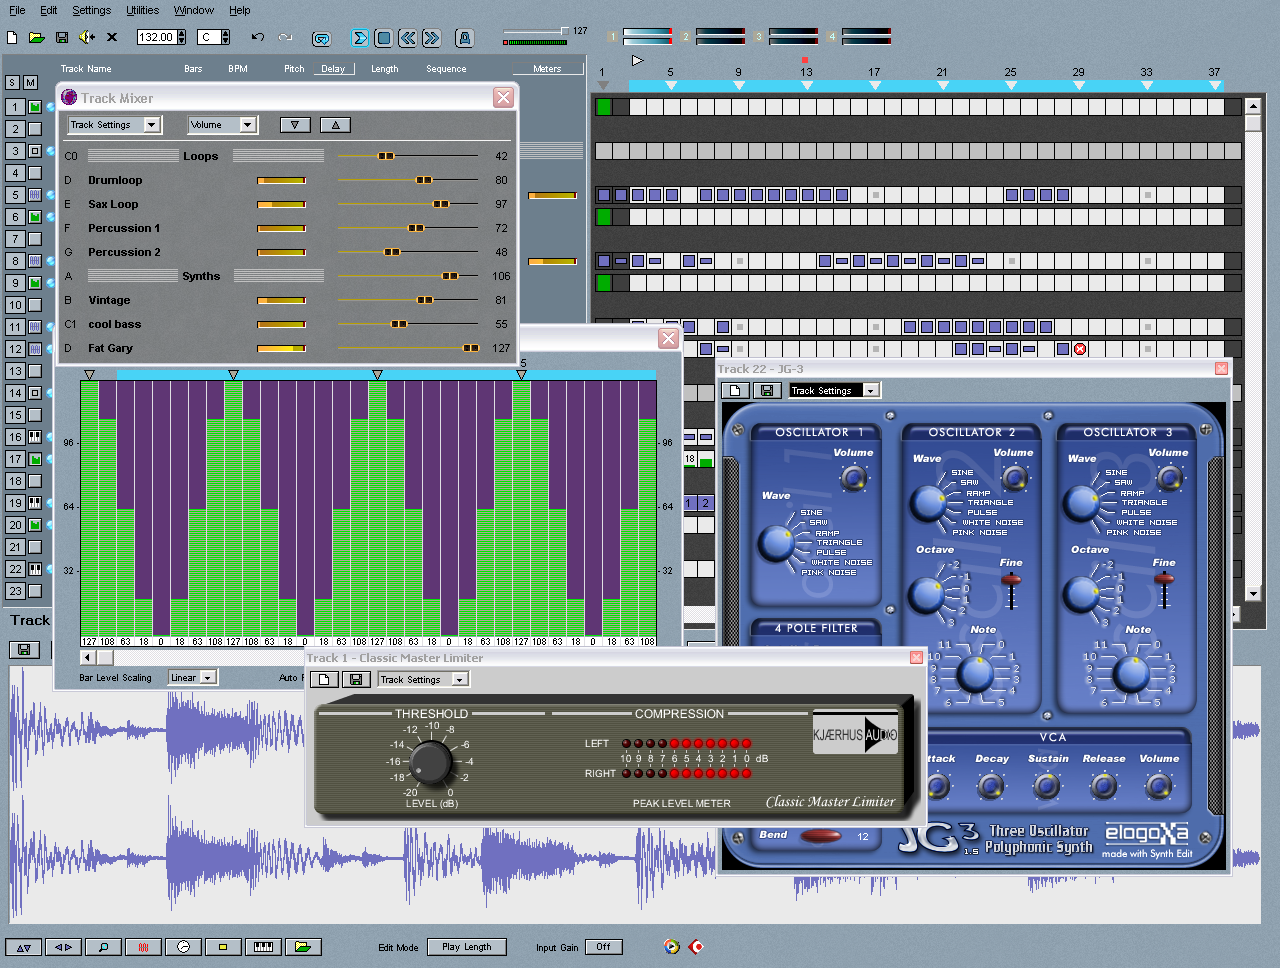 The Worlds Most Creative Music Software So Easy To Use ANYONE Can Make